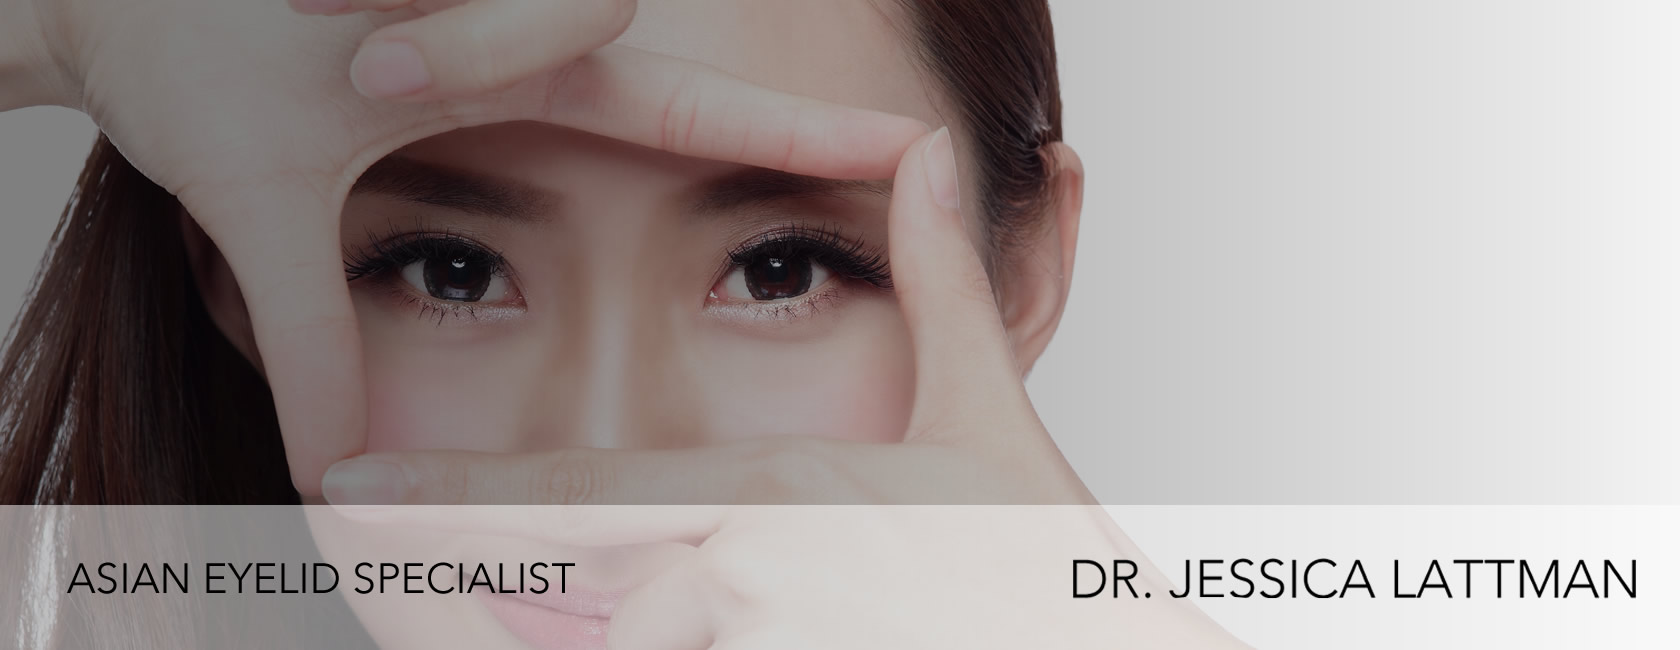 Asian Eyelid Specialist New York City NYC